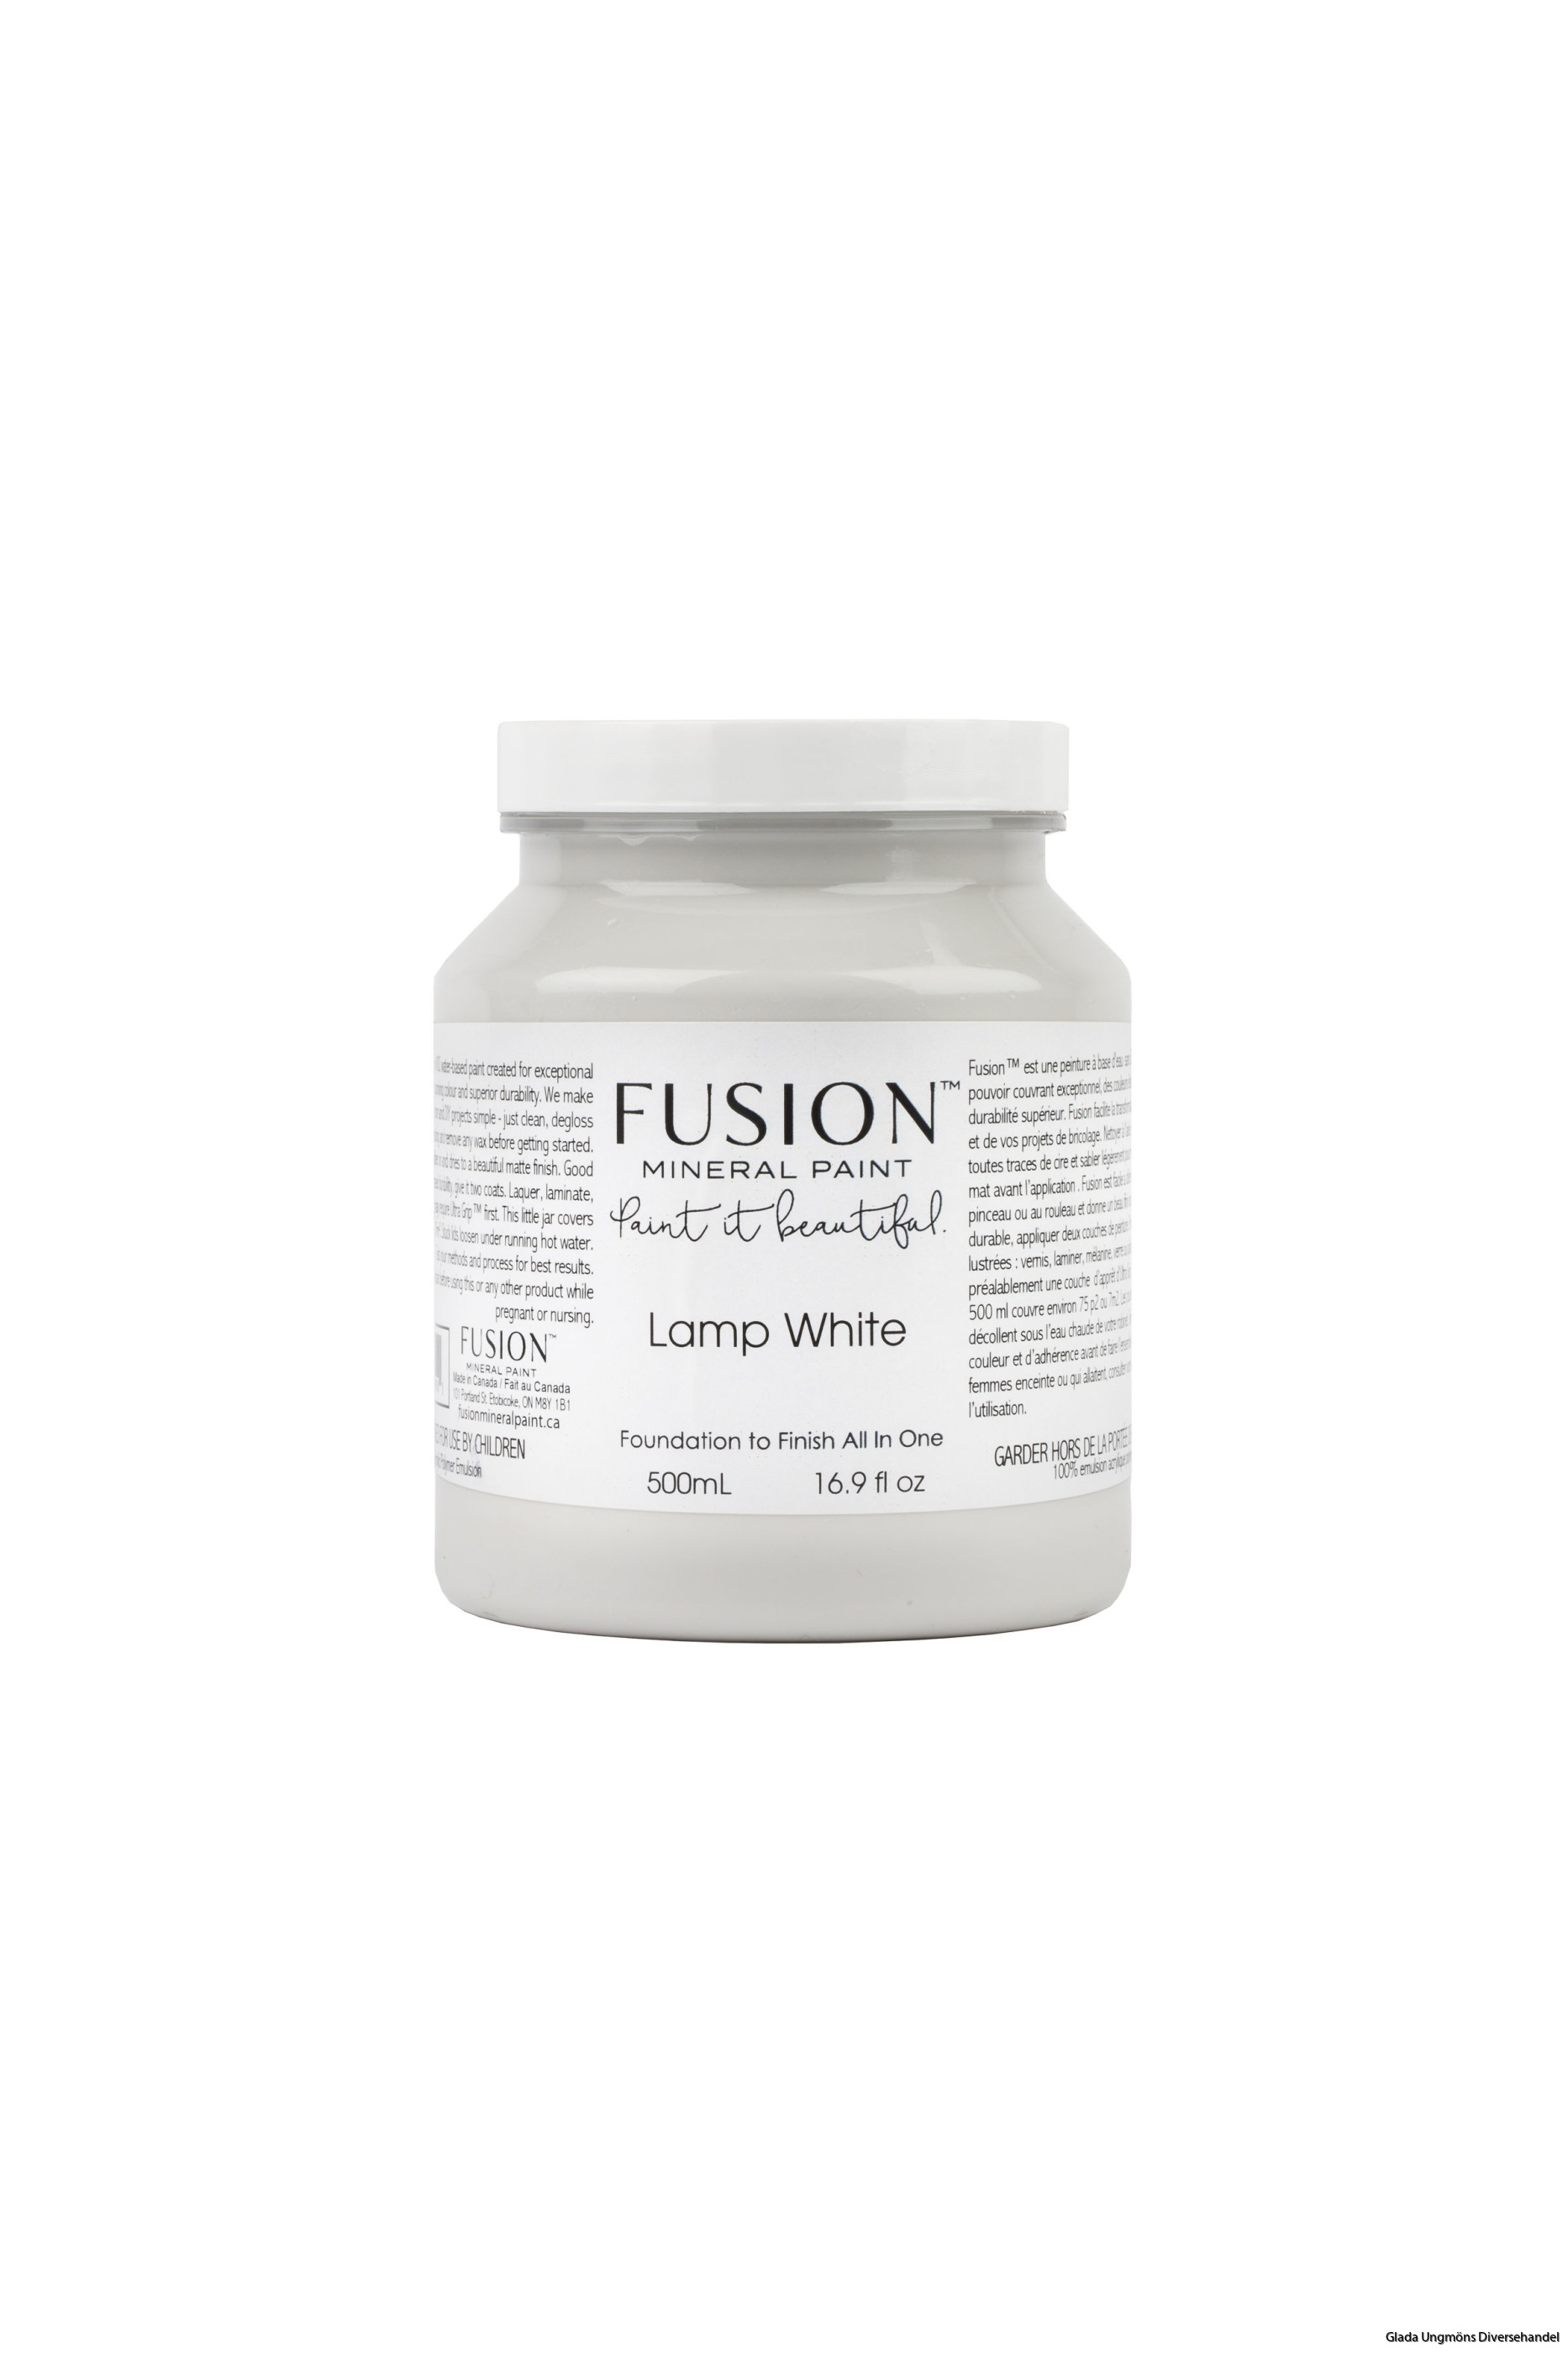 fusion_mineral_paint-lampwhite-pint